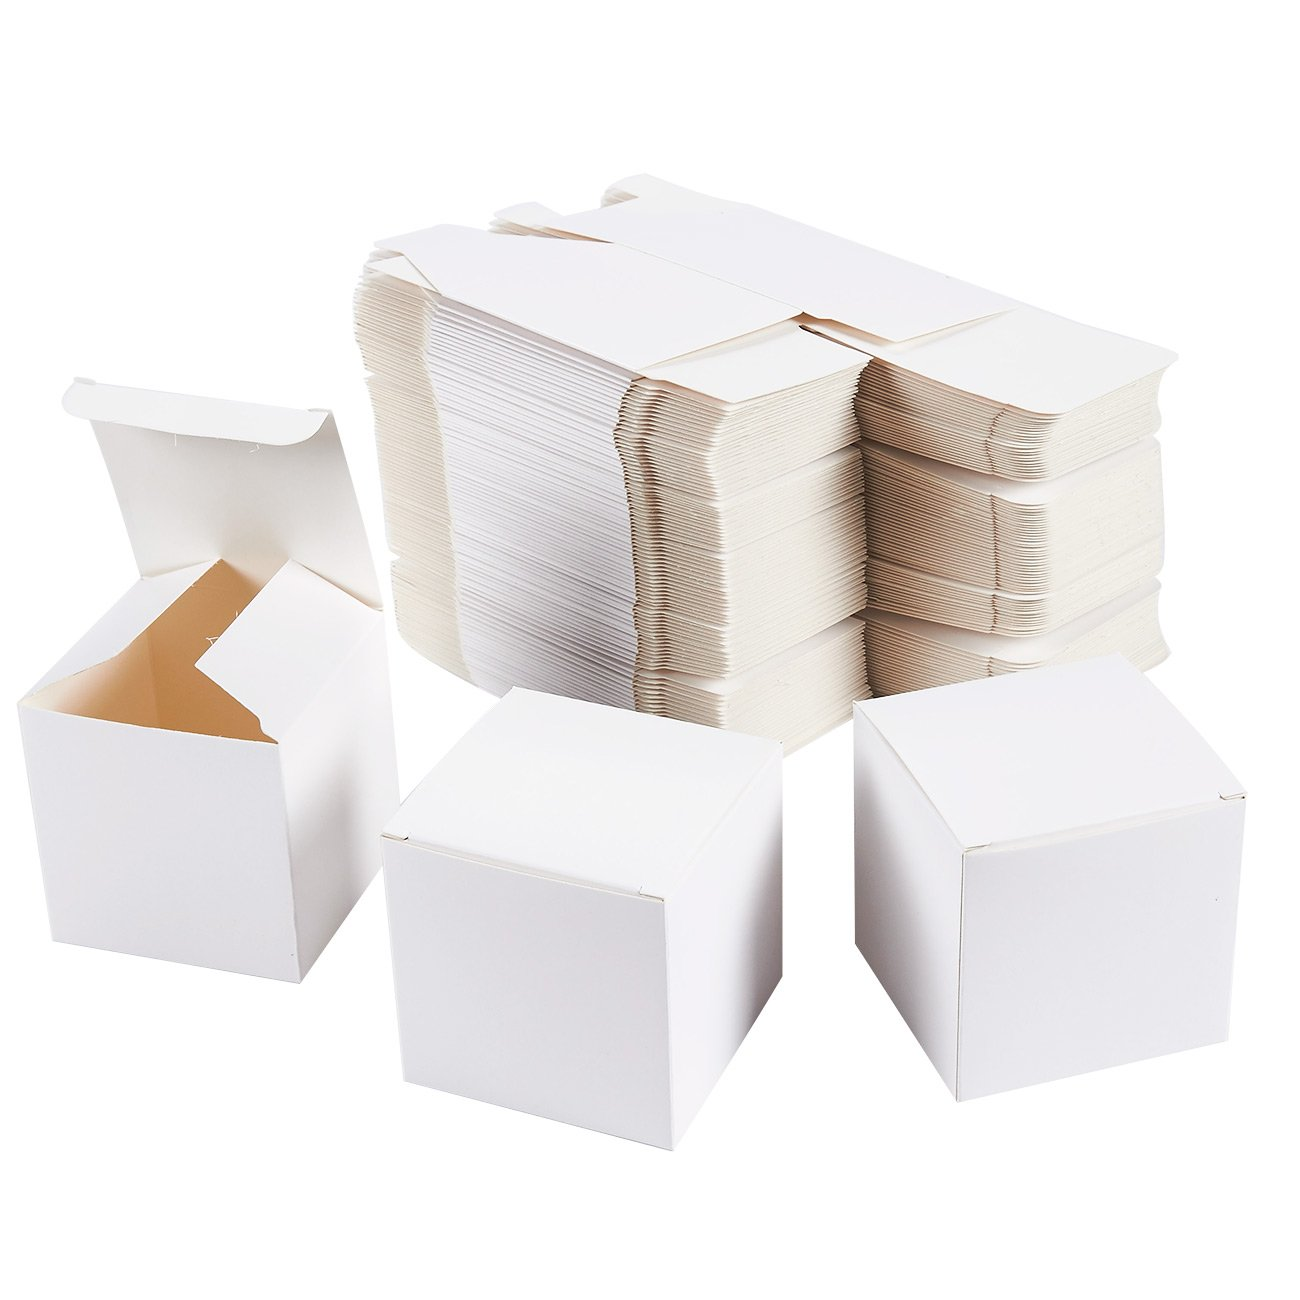 Amazon.com White Gift Boxes - 100-Pack Gift Wrapping Paper Boxes with Lids Kraft Boxes for Party Supplies Cupcake Containers Wedding Favors Small ...  sc 1 st  Amazon.com & Amazon.com: White Gift Boxes - 100-Pack Gift Wrapping Paper Boxes ...